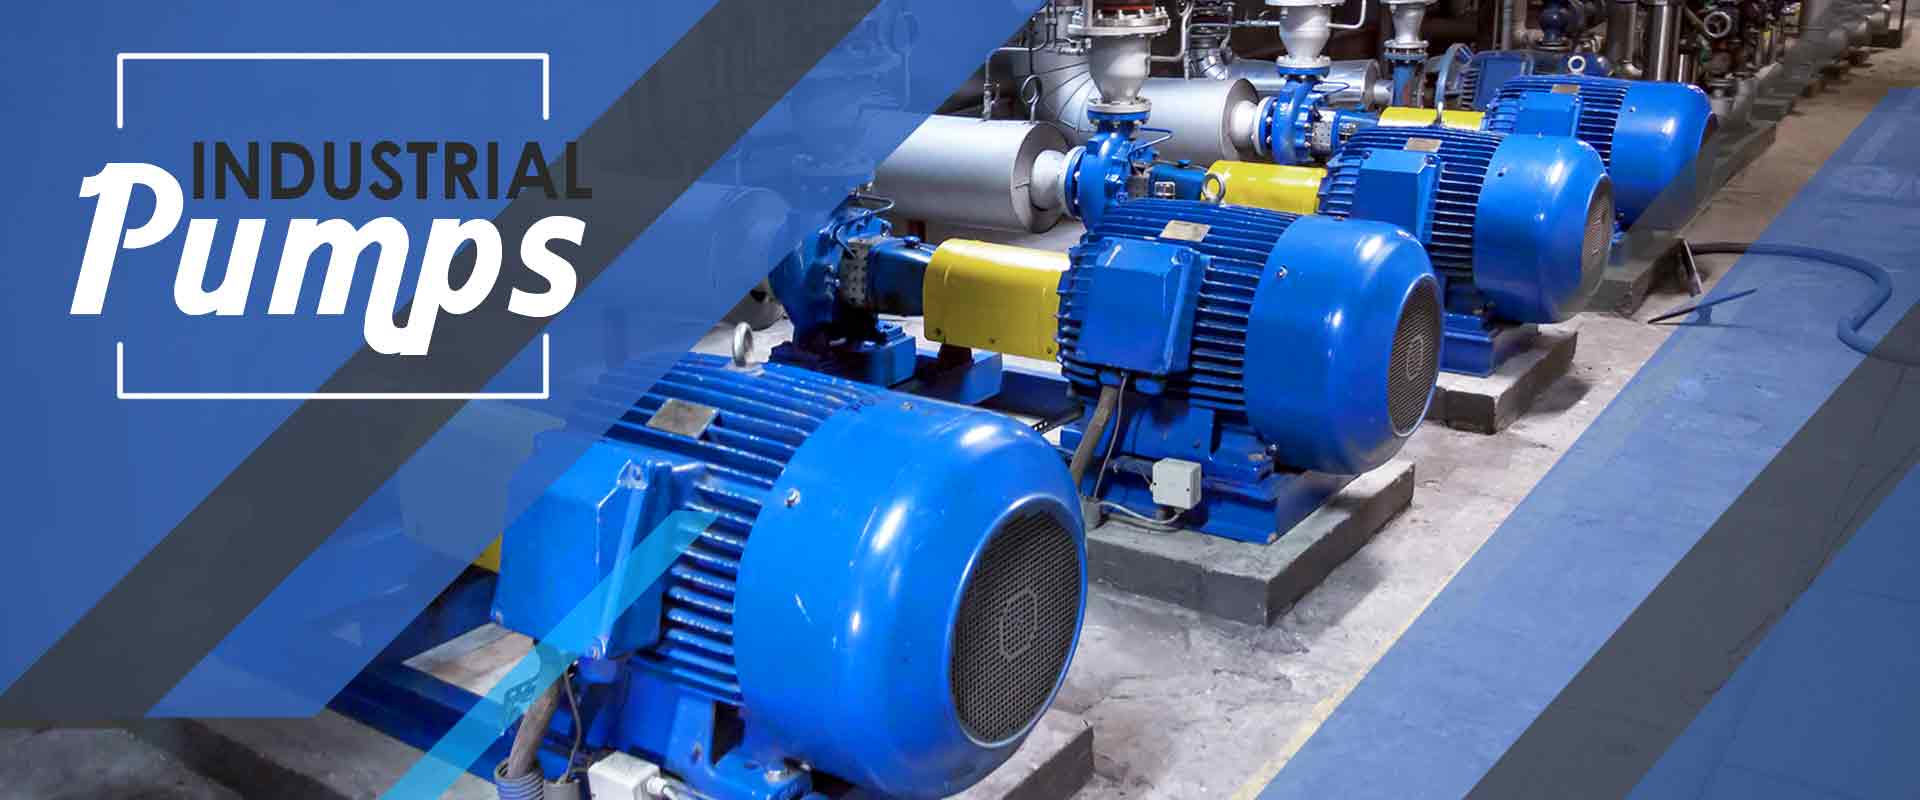 Industrial Pumps Manufacturers In San Diego